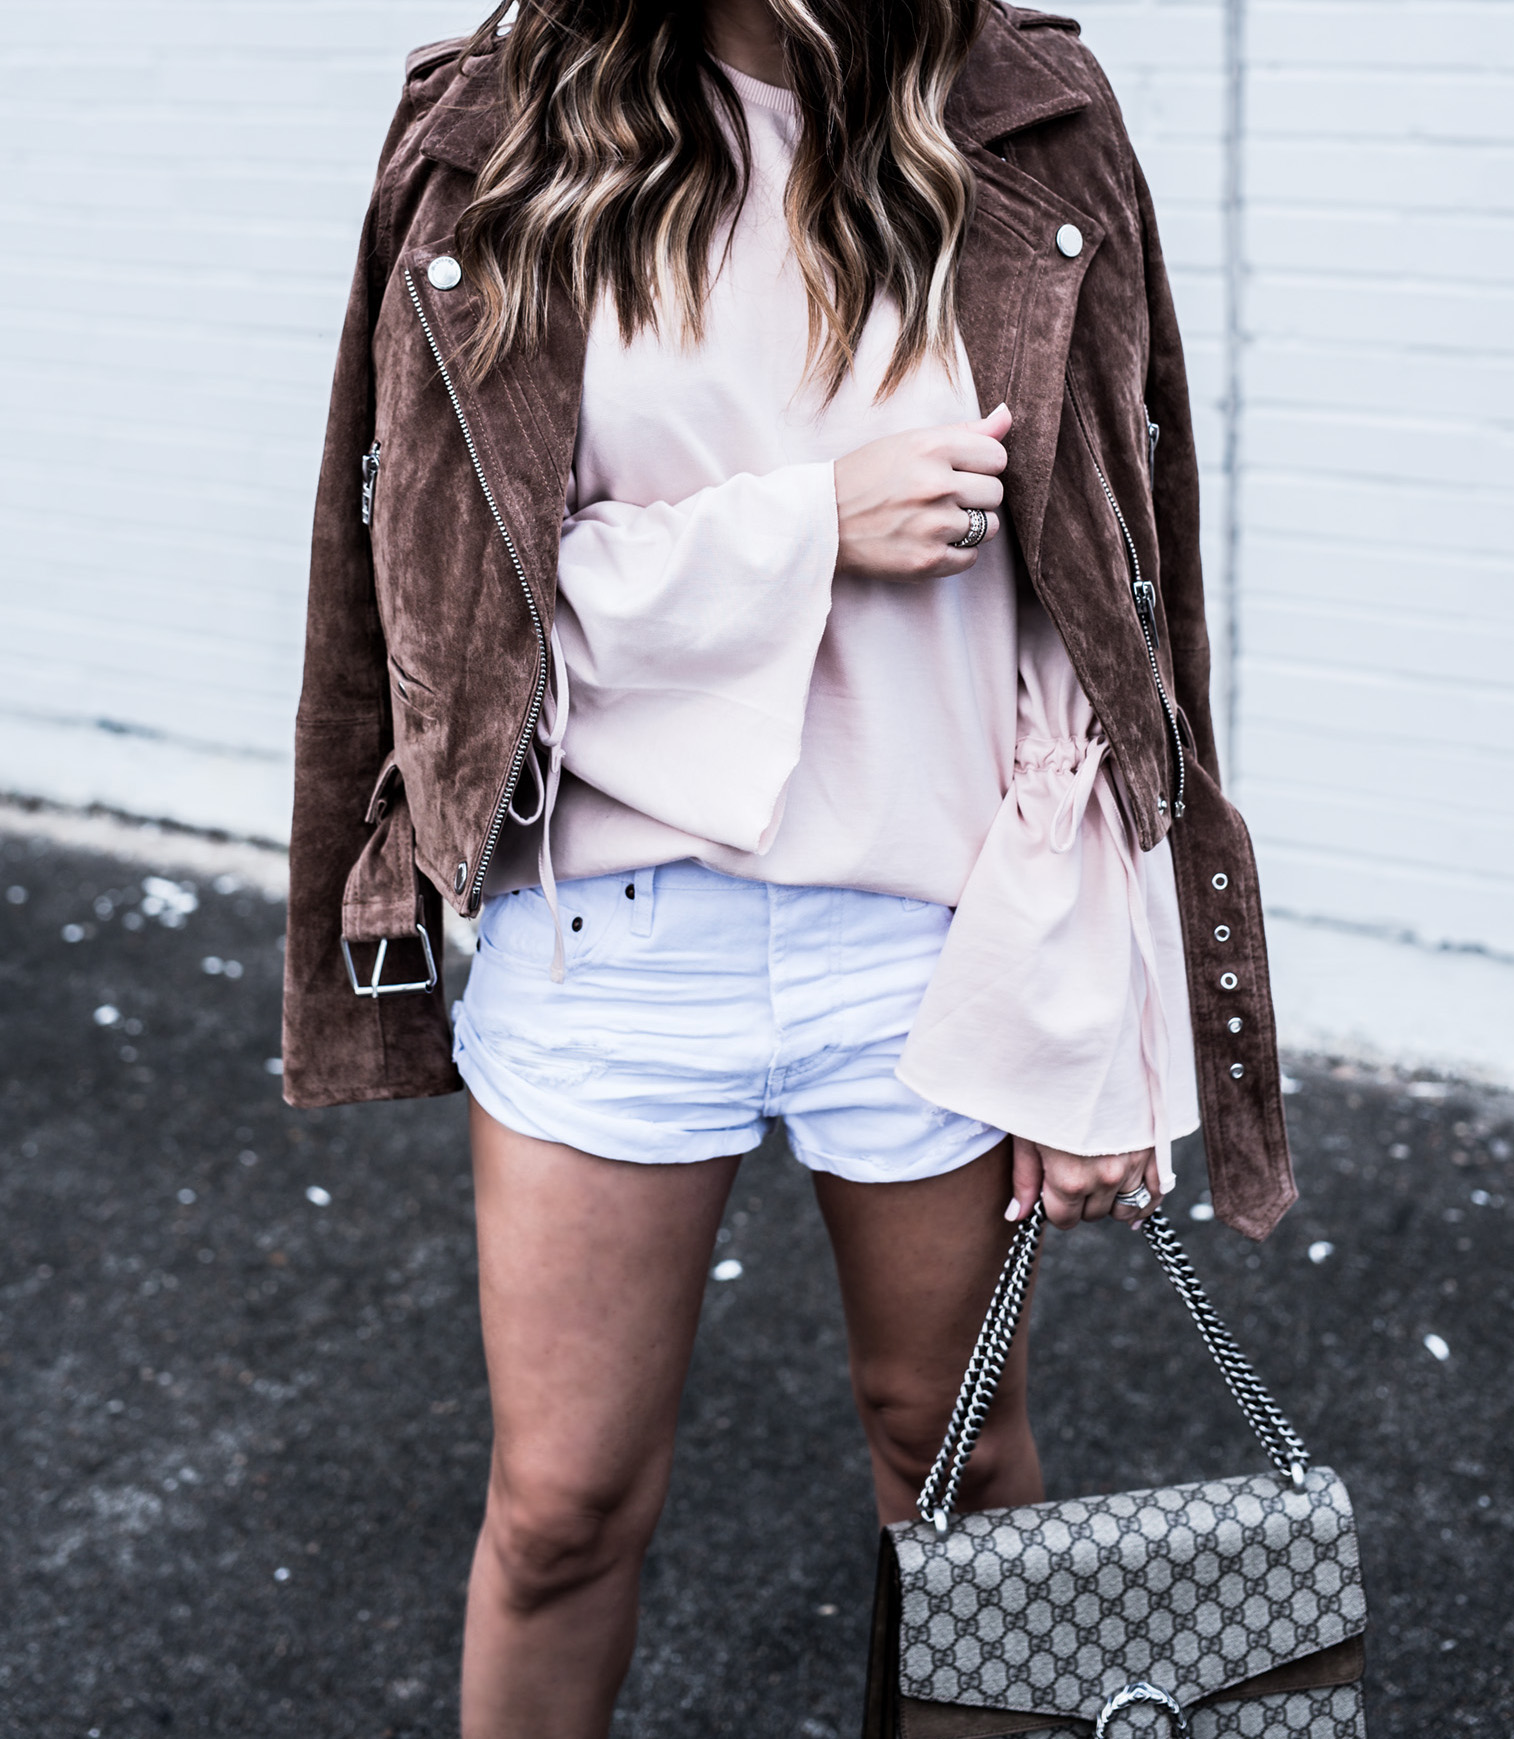 Houston fashion and lifestyle blogger Tiffany Jais | White One Teaspoon shorts currently on sale! Click for more details! | Gucci Dionysus bag, pink bell sleeve top, spring outfit ideas 2017